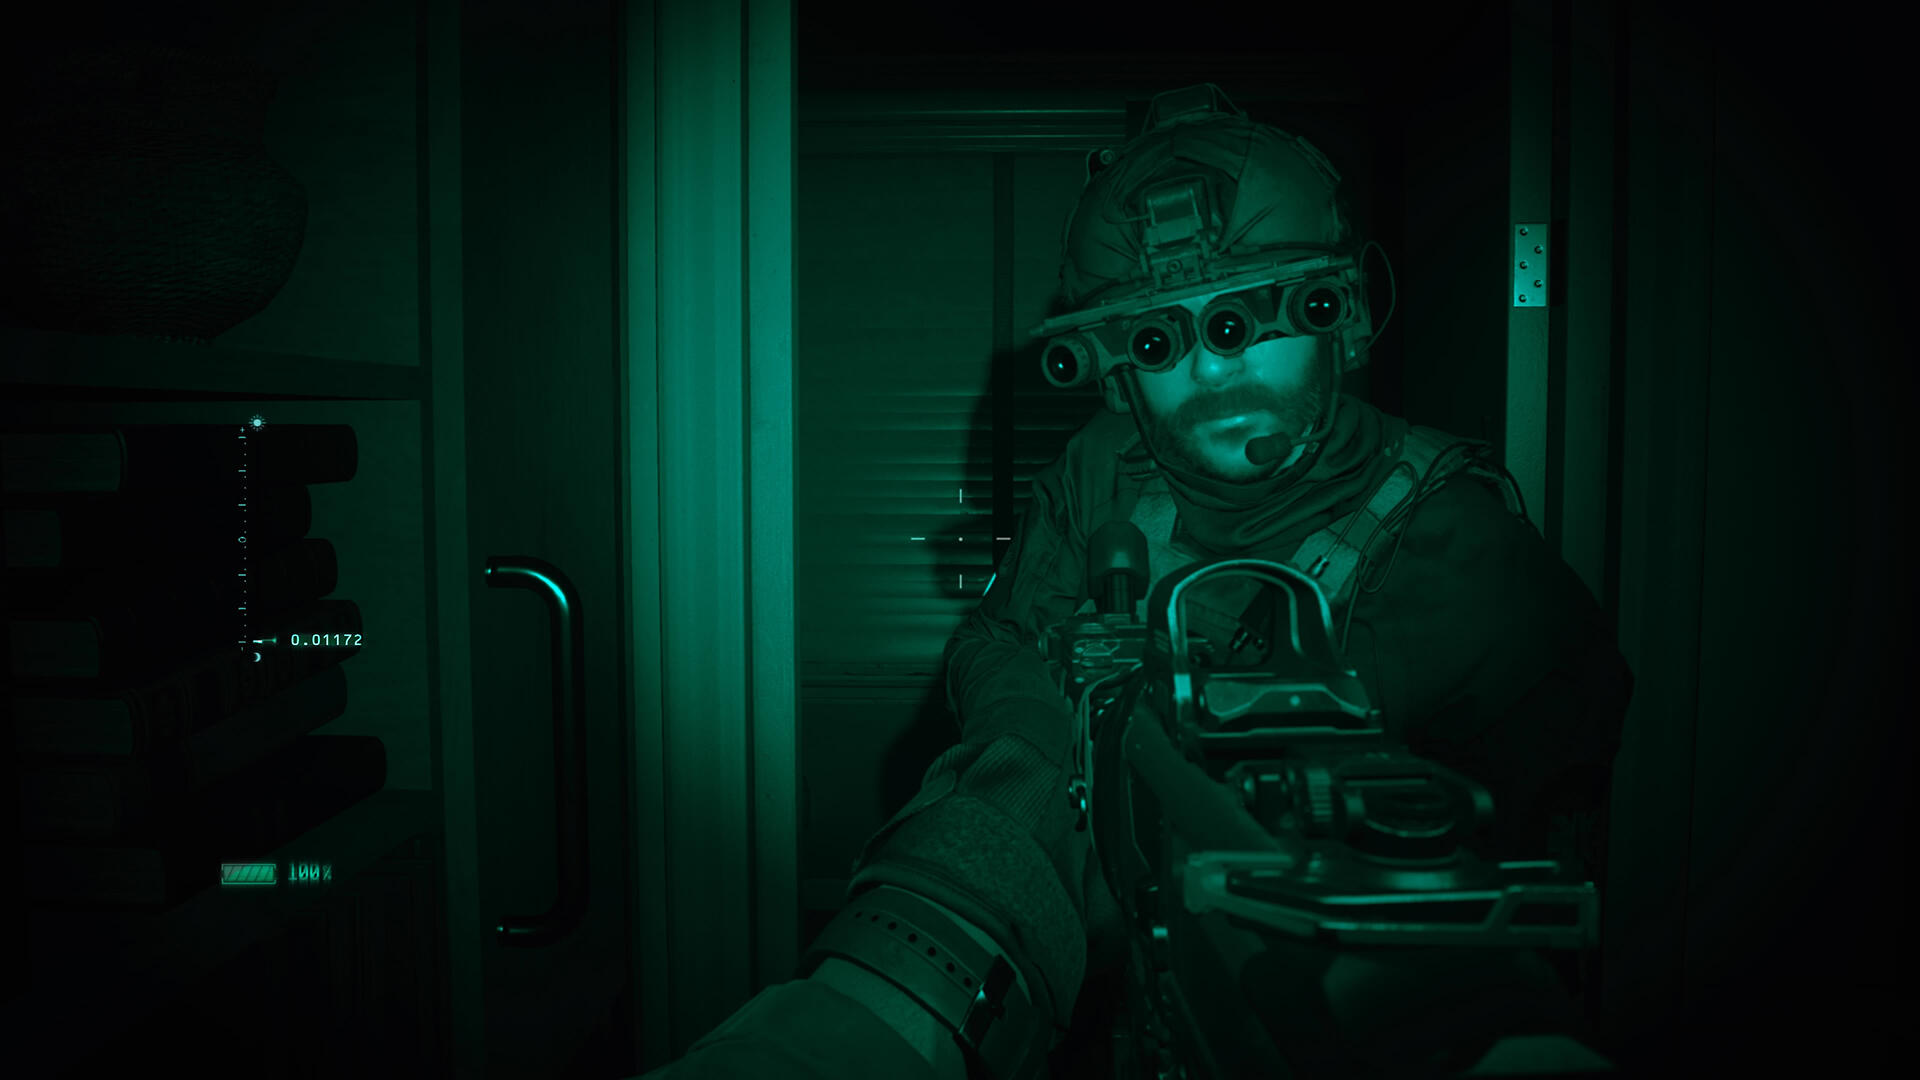 Call of Duty: Modern Warfare Review: Unlaced Boots on the Ground